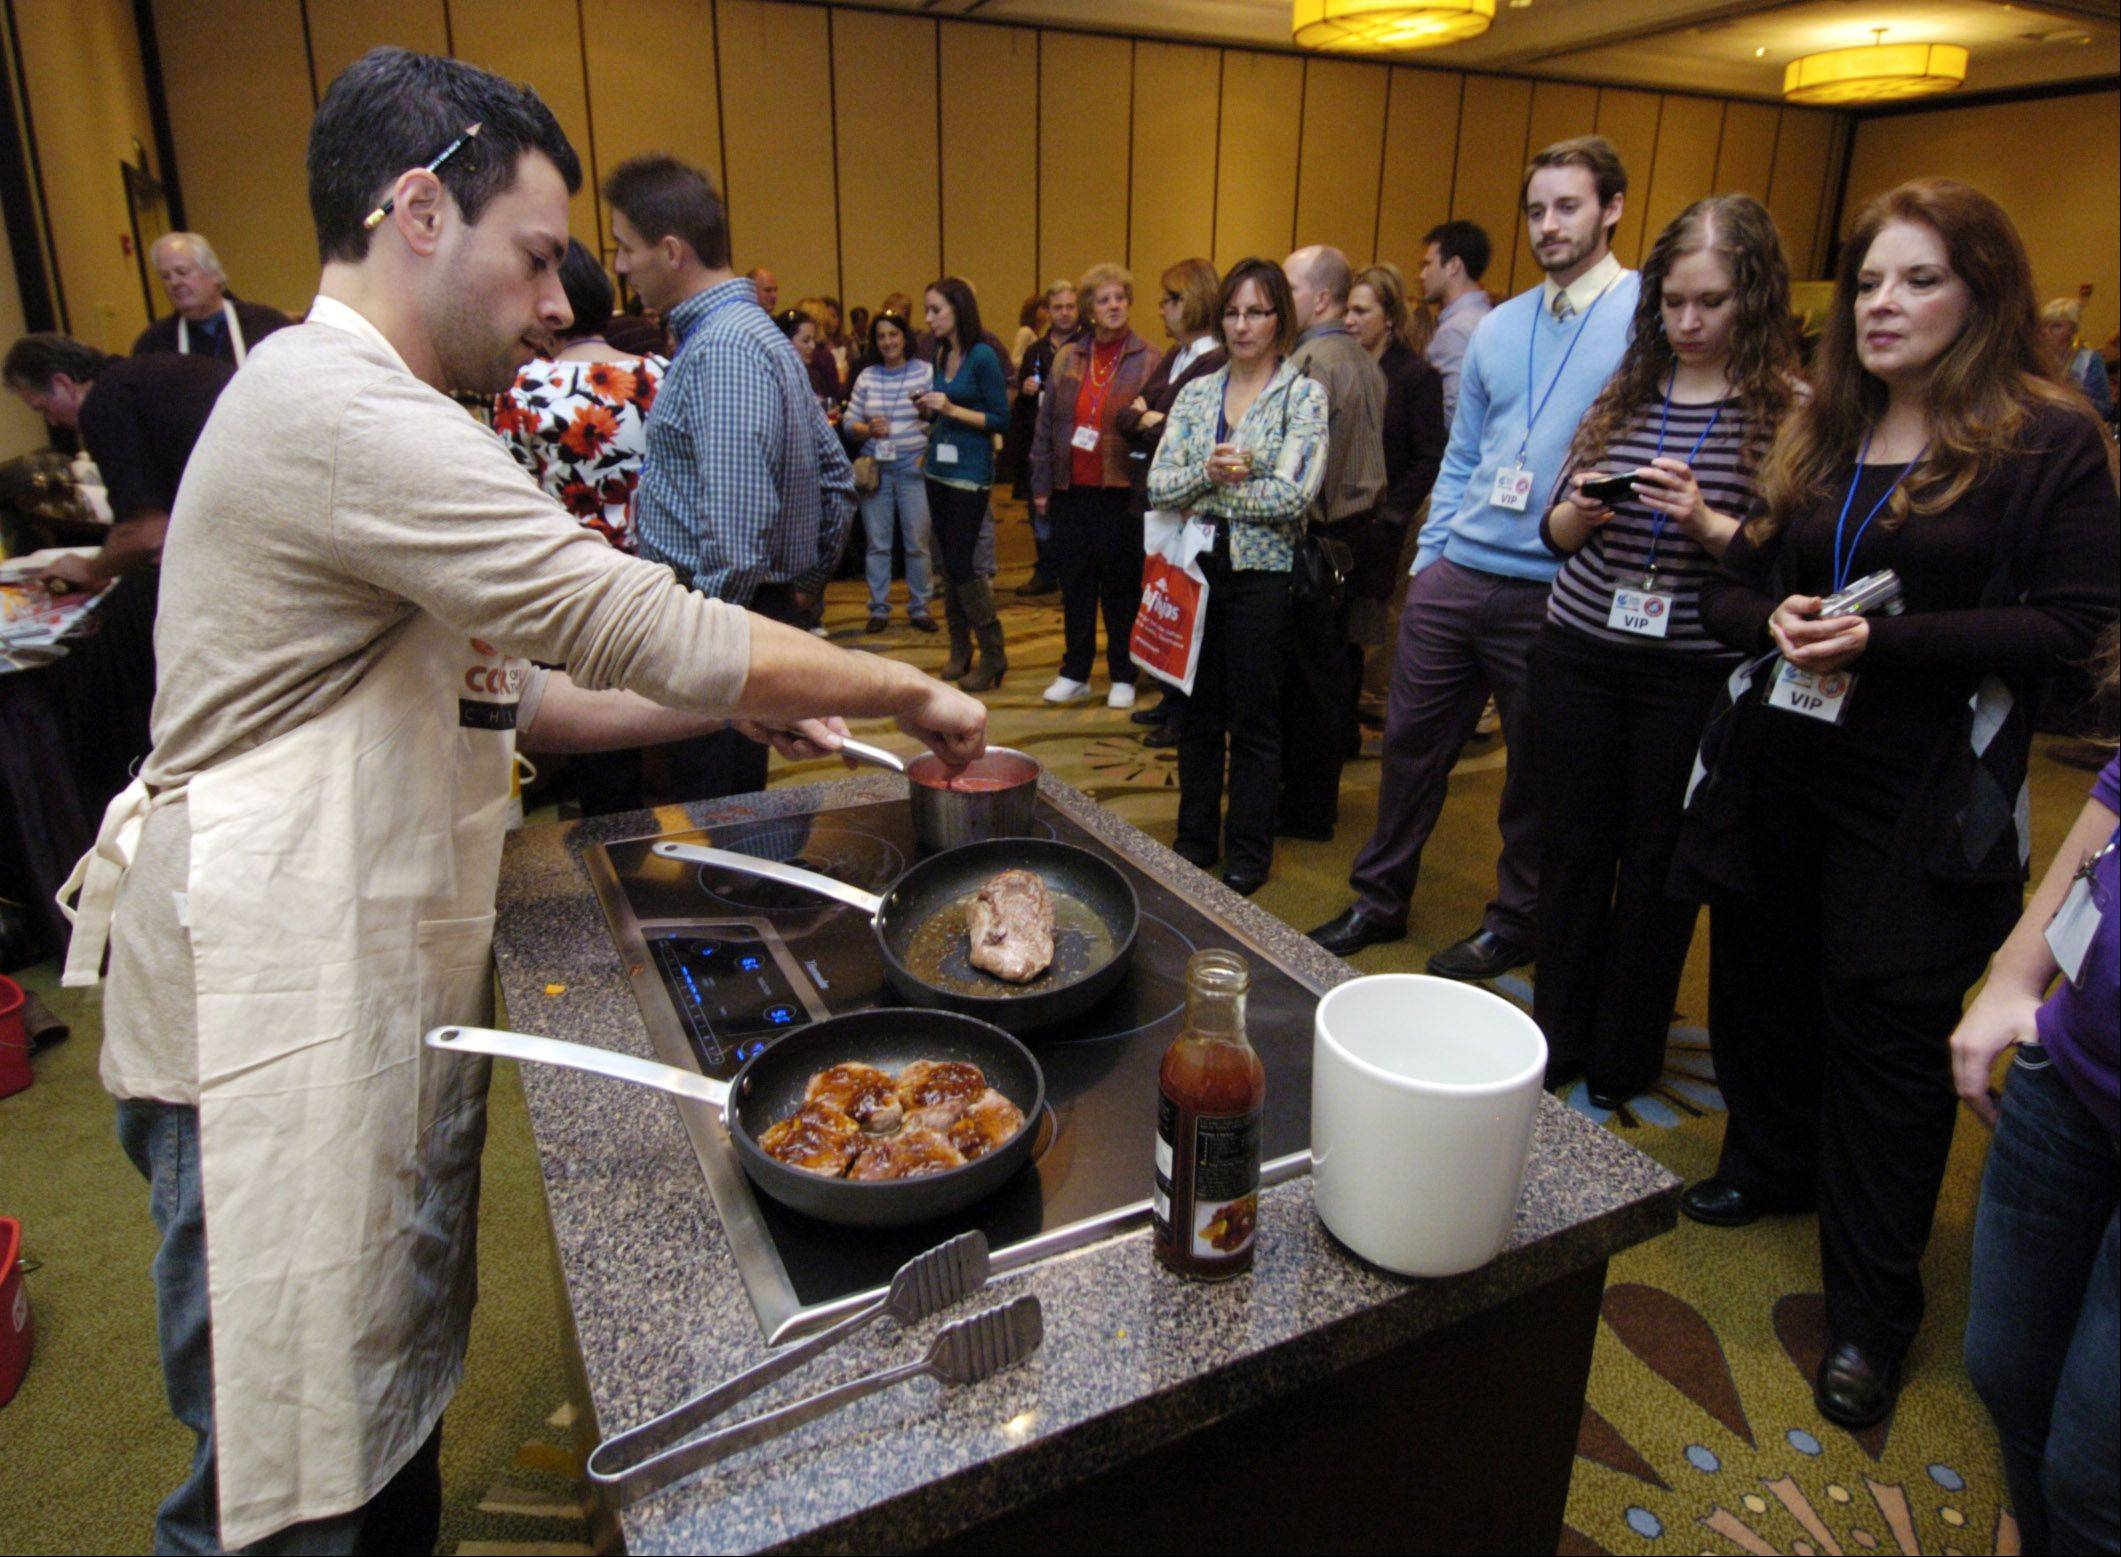 A crowd gathers to watch contestant Michael Lalagos, of Schaumburg, as he competed in the 2011 Daily Herald Cook of the Week Challenge cook-off. Tickets are now on sale for the 2012 cook-off.